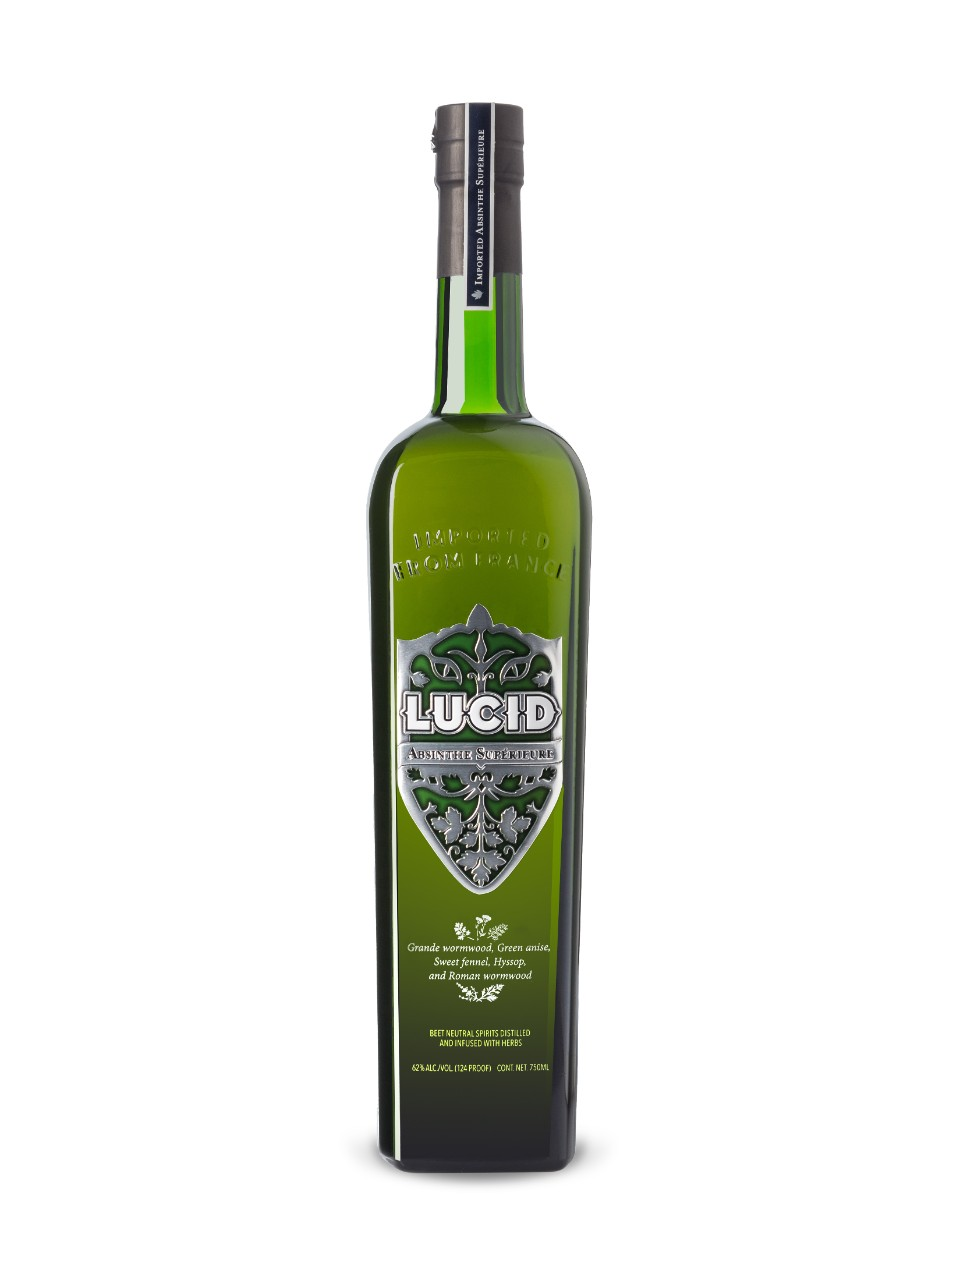 Lucid Absinthe Superieure | LCBO